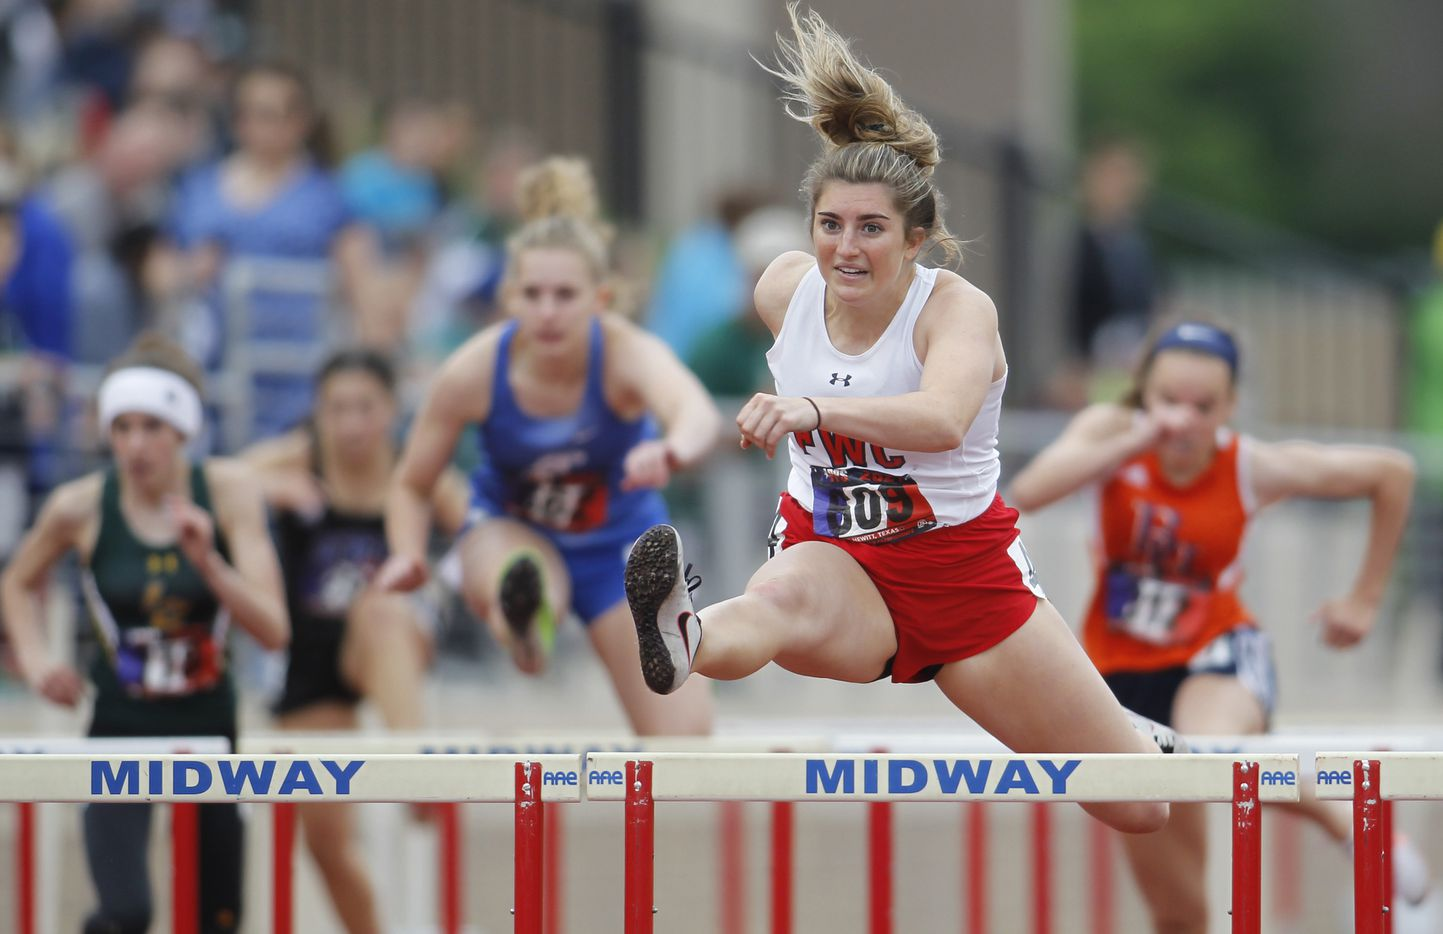 Fort Worth Christian's Abby Klipstein clears a hurdle enroute to her 1st place finish in the Class 5A Women 100 Meter hurdles event. The running finals from the TAPPS state track meet were held at Waco Midway's Panther Stadium in Hewitt on May 1, 2021. (Steve Hamm/ Special Contributor)